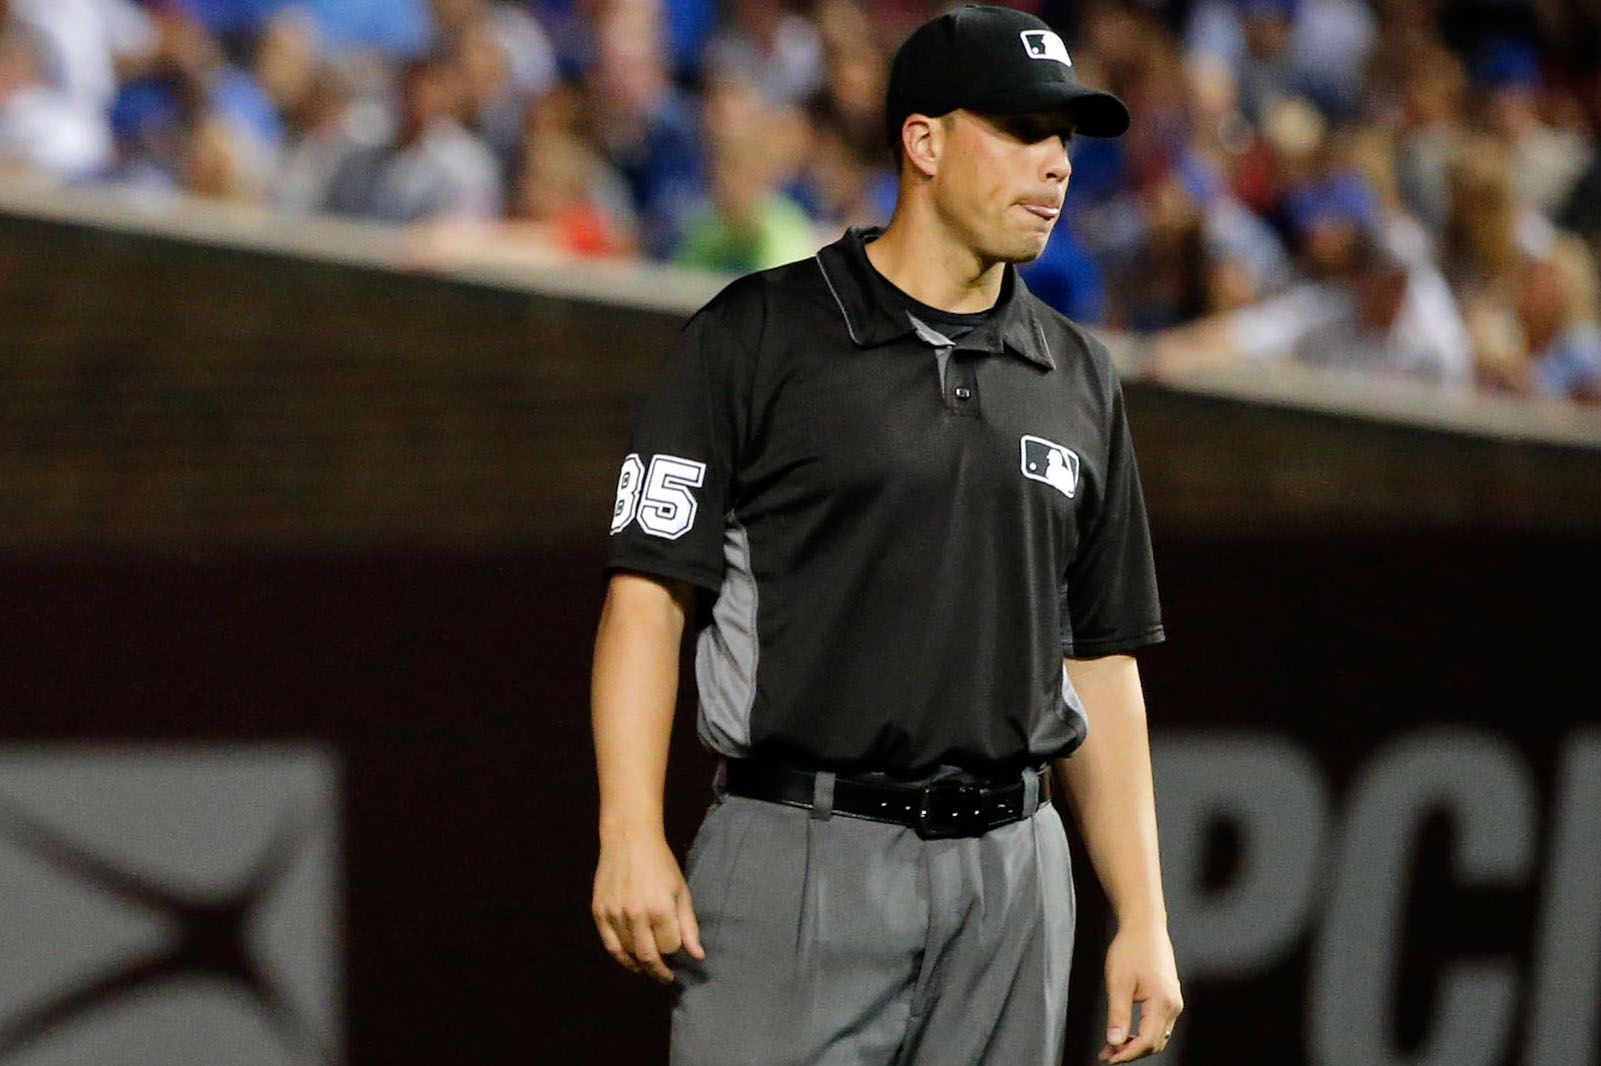 Umpire Stu Scheurwater hired full-time by Major League Baseball